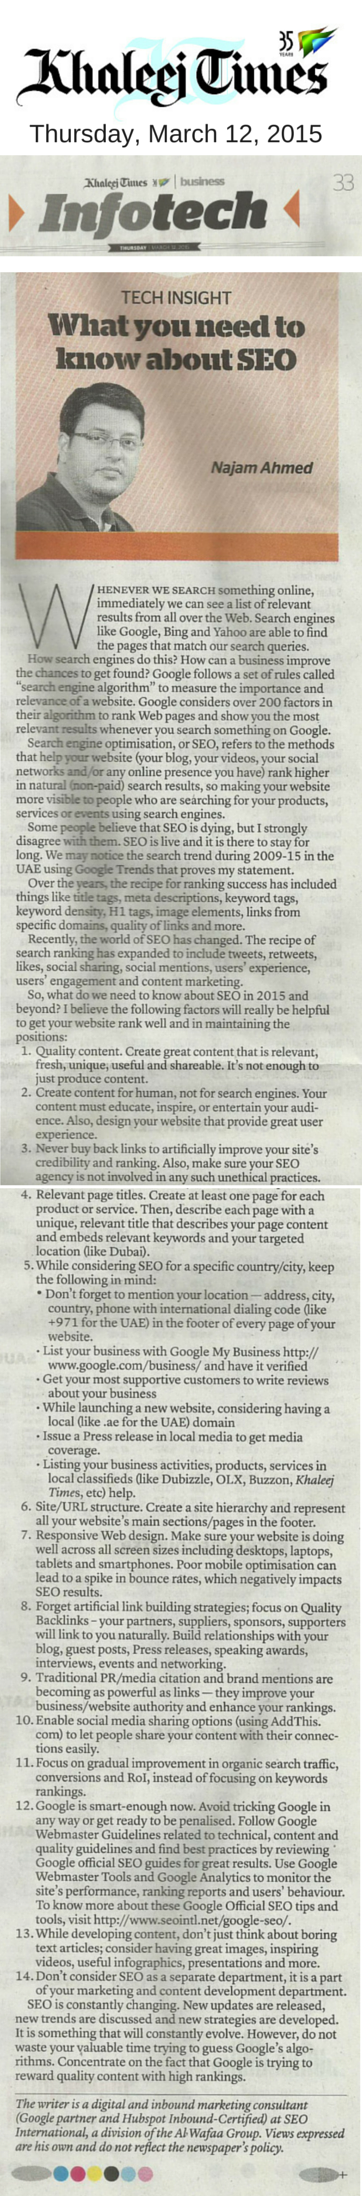 SEO 2015 Khaleej Times Article - Mar 12, 2015